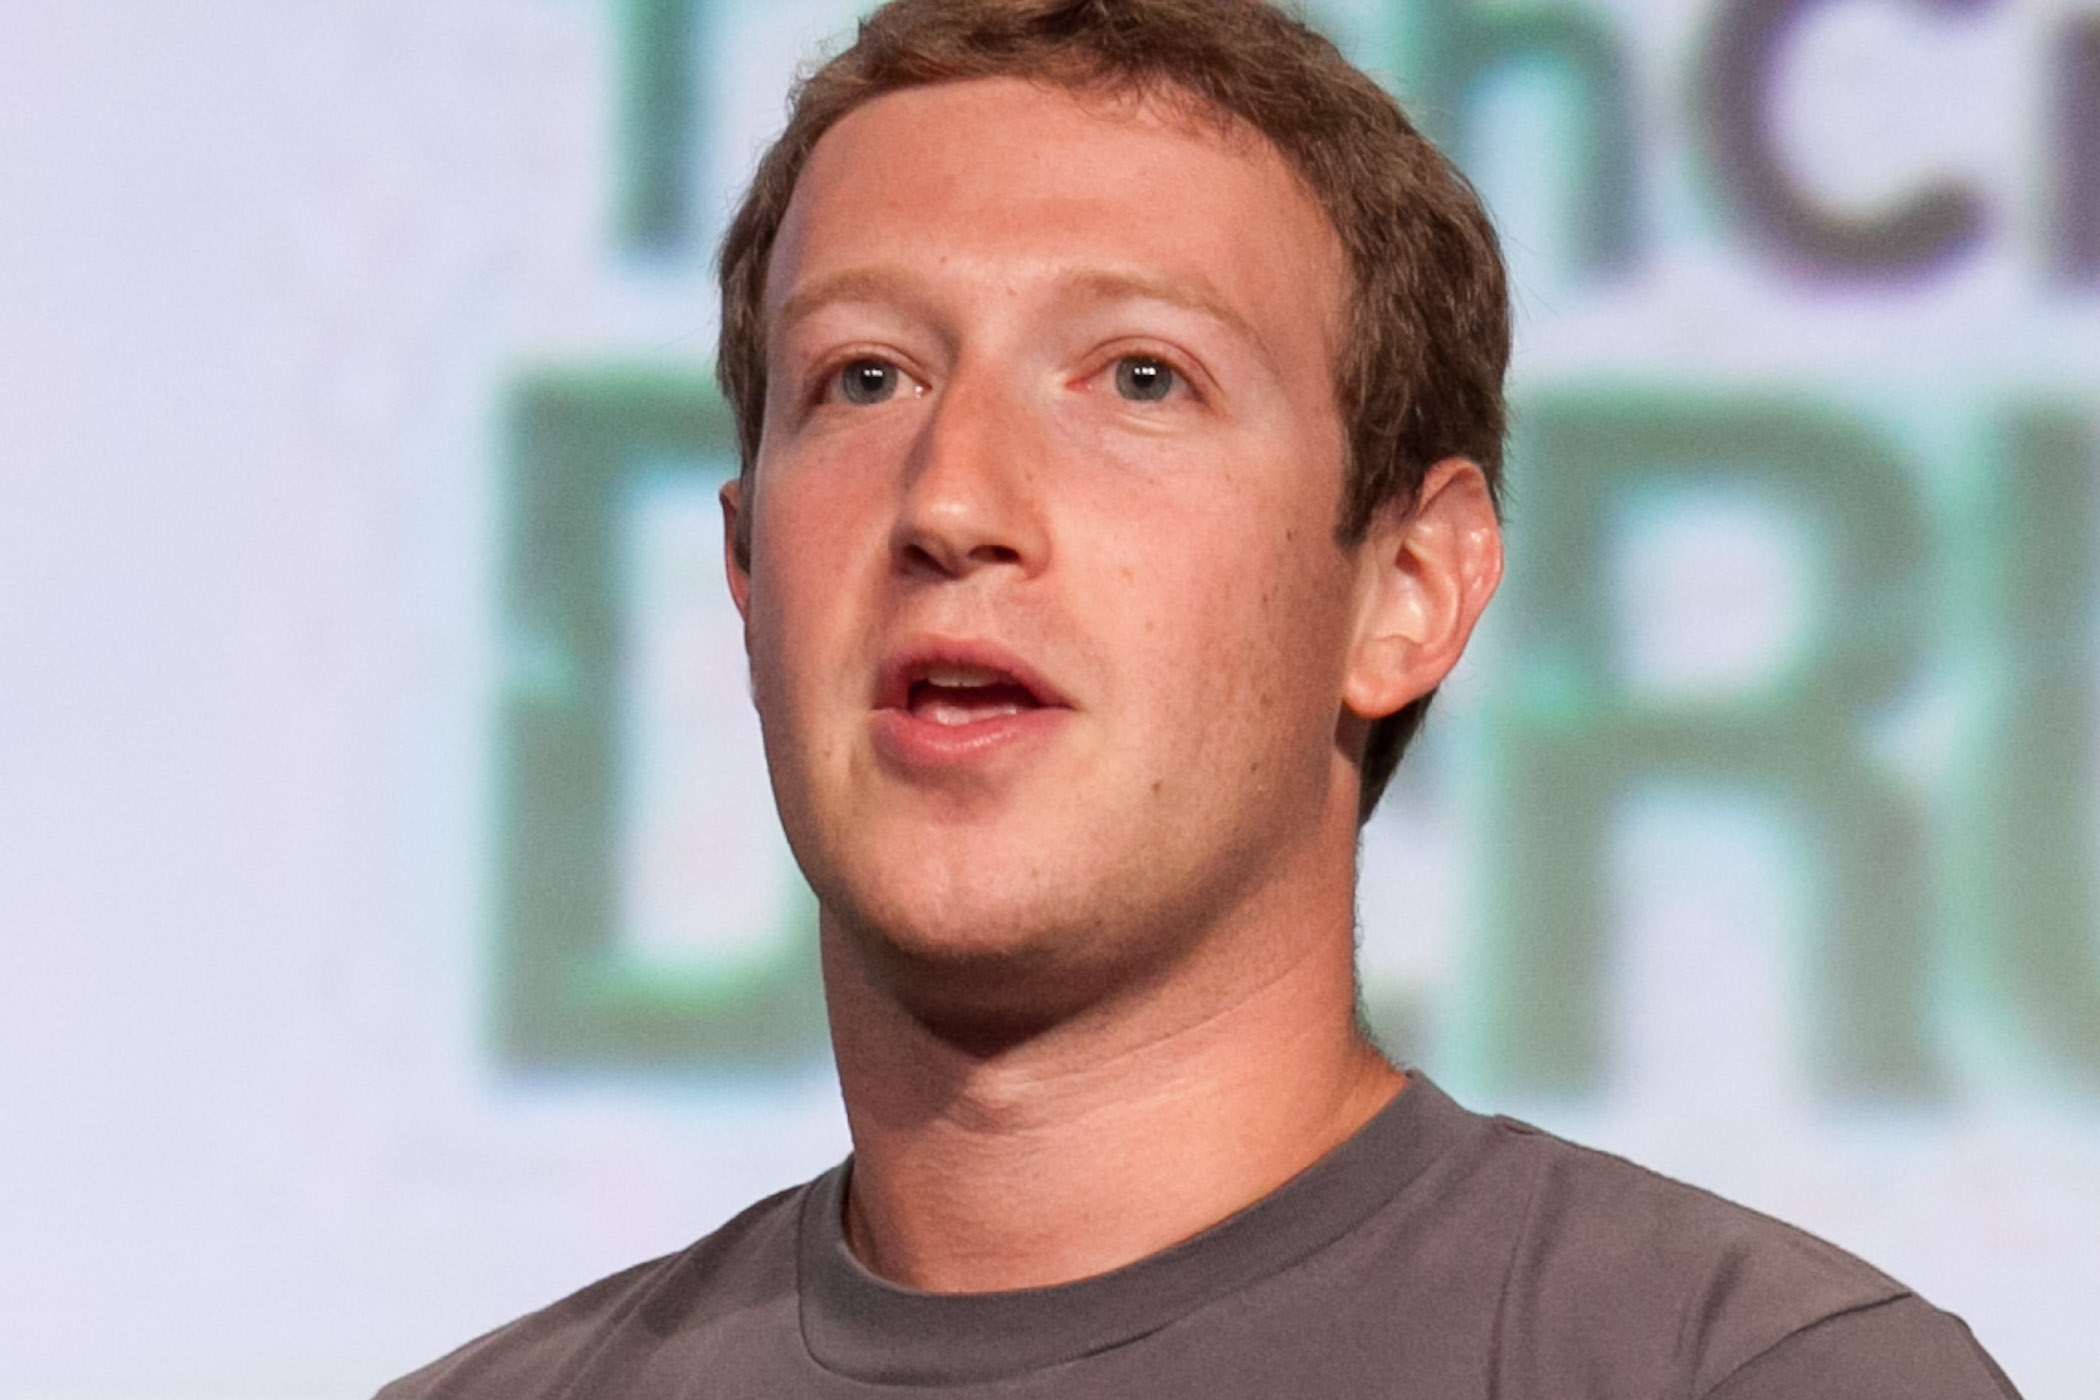 Facebook CEO Mark Zuckerberg is a white man with light eyes and short hair. He speaks on stage.